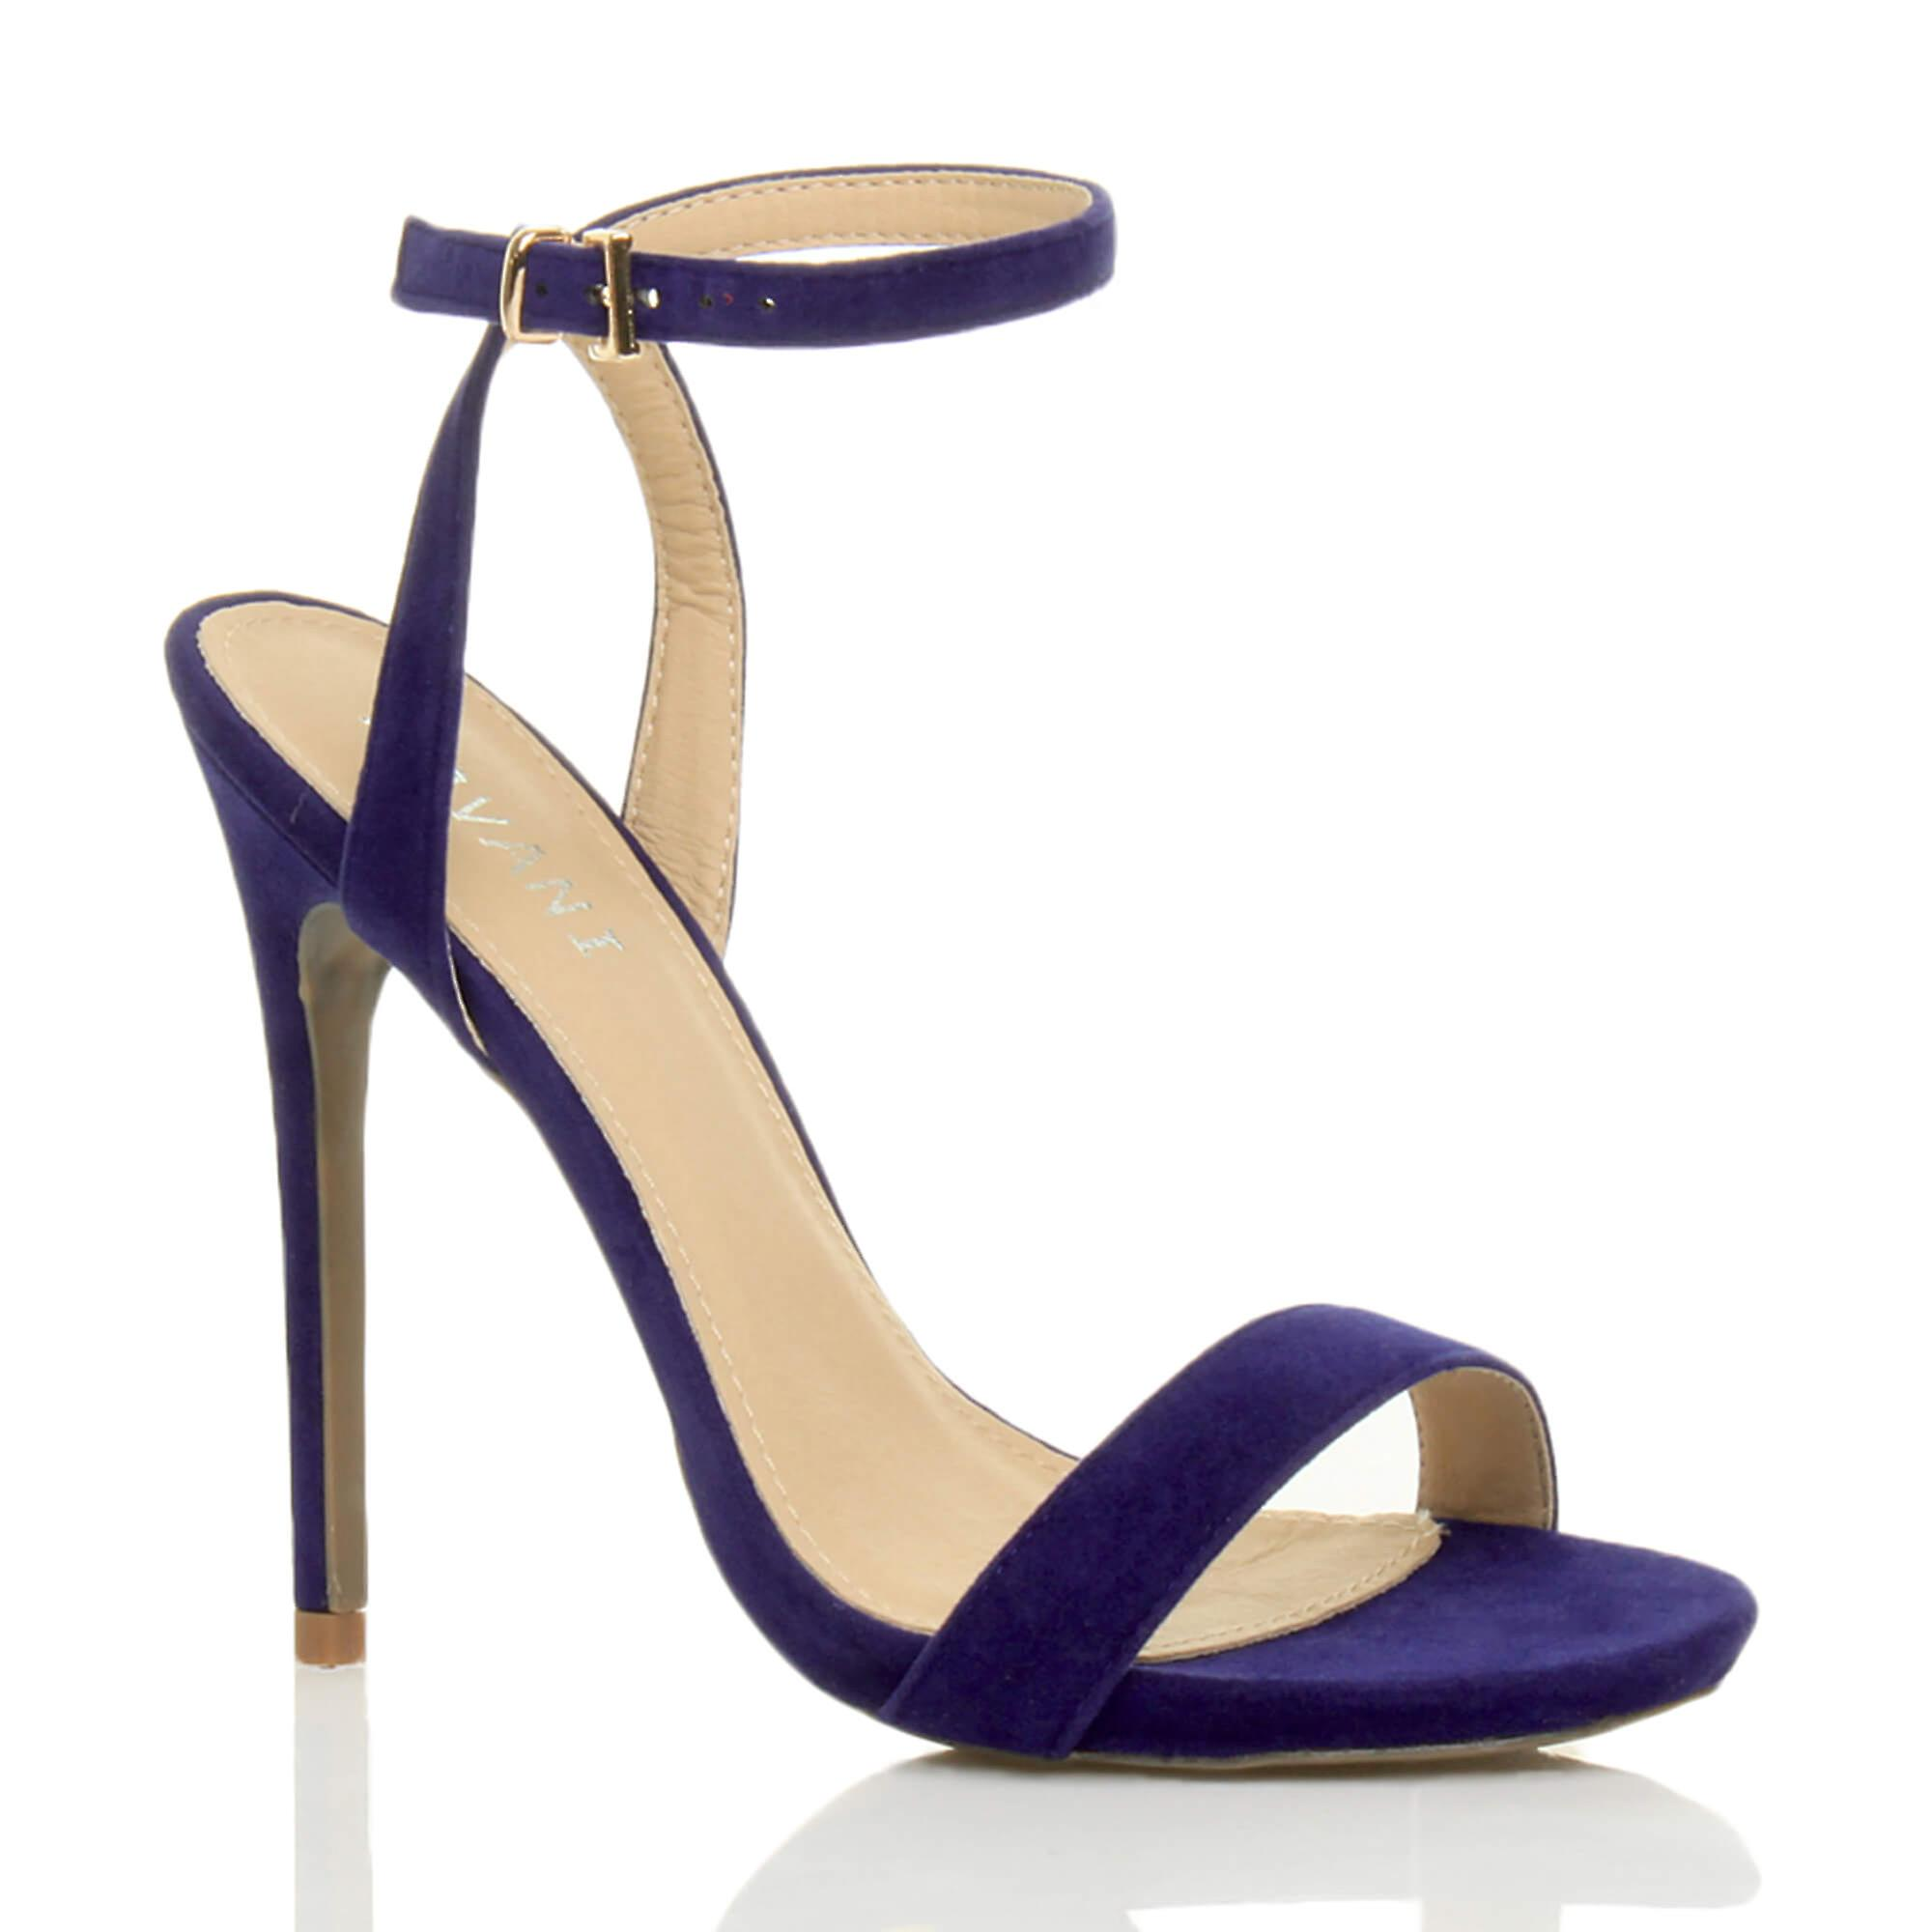 Ajvani womens high heel platform strappy ankle strap barely there strappy platform sandals shoes-Fashion-Man's/Woman's e15aed